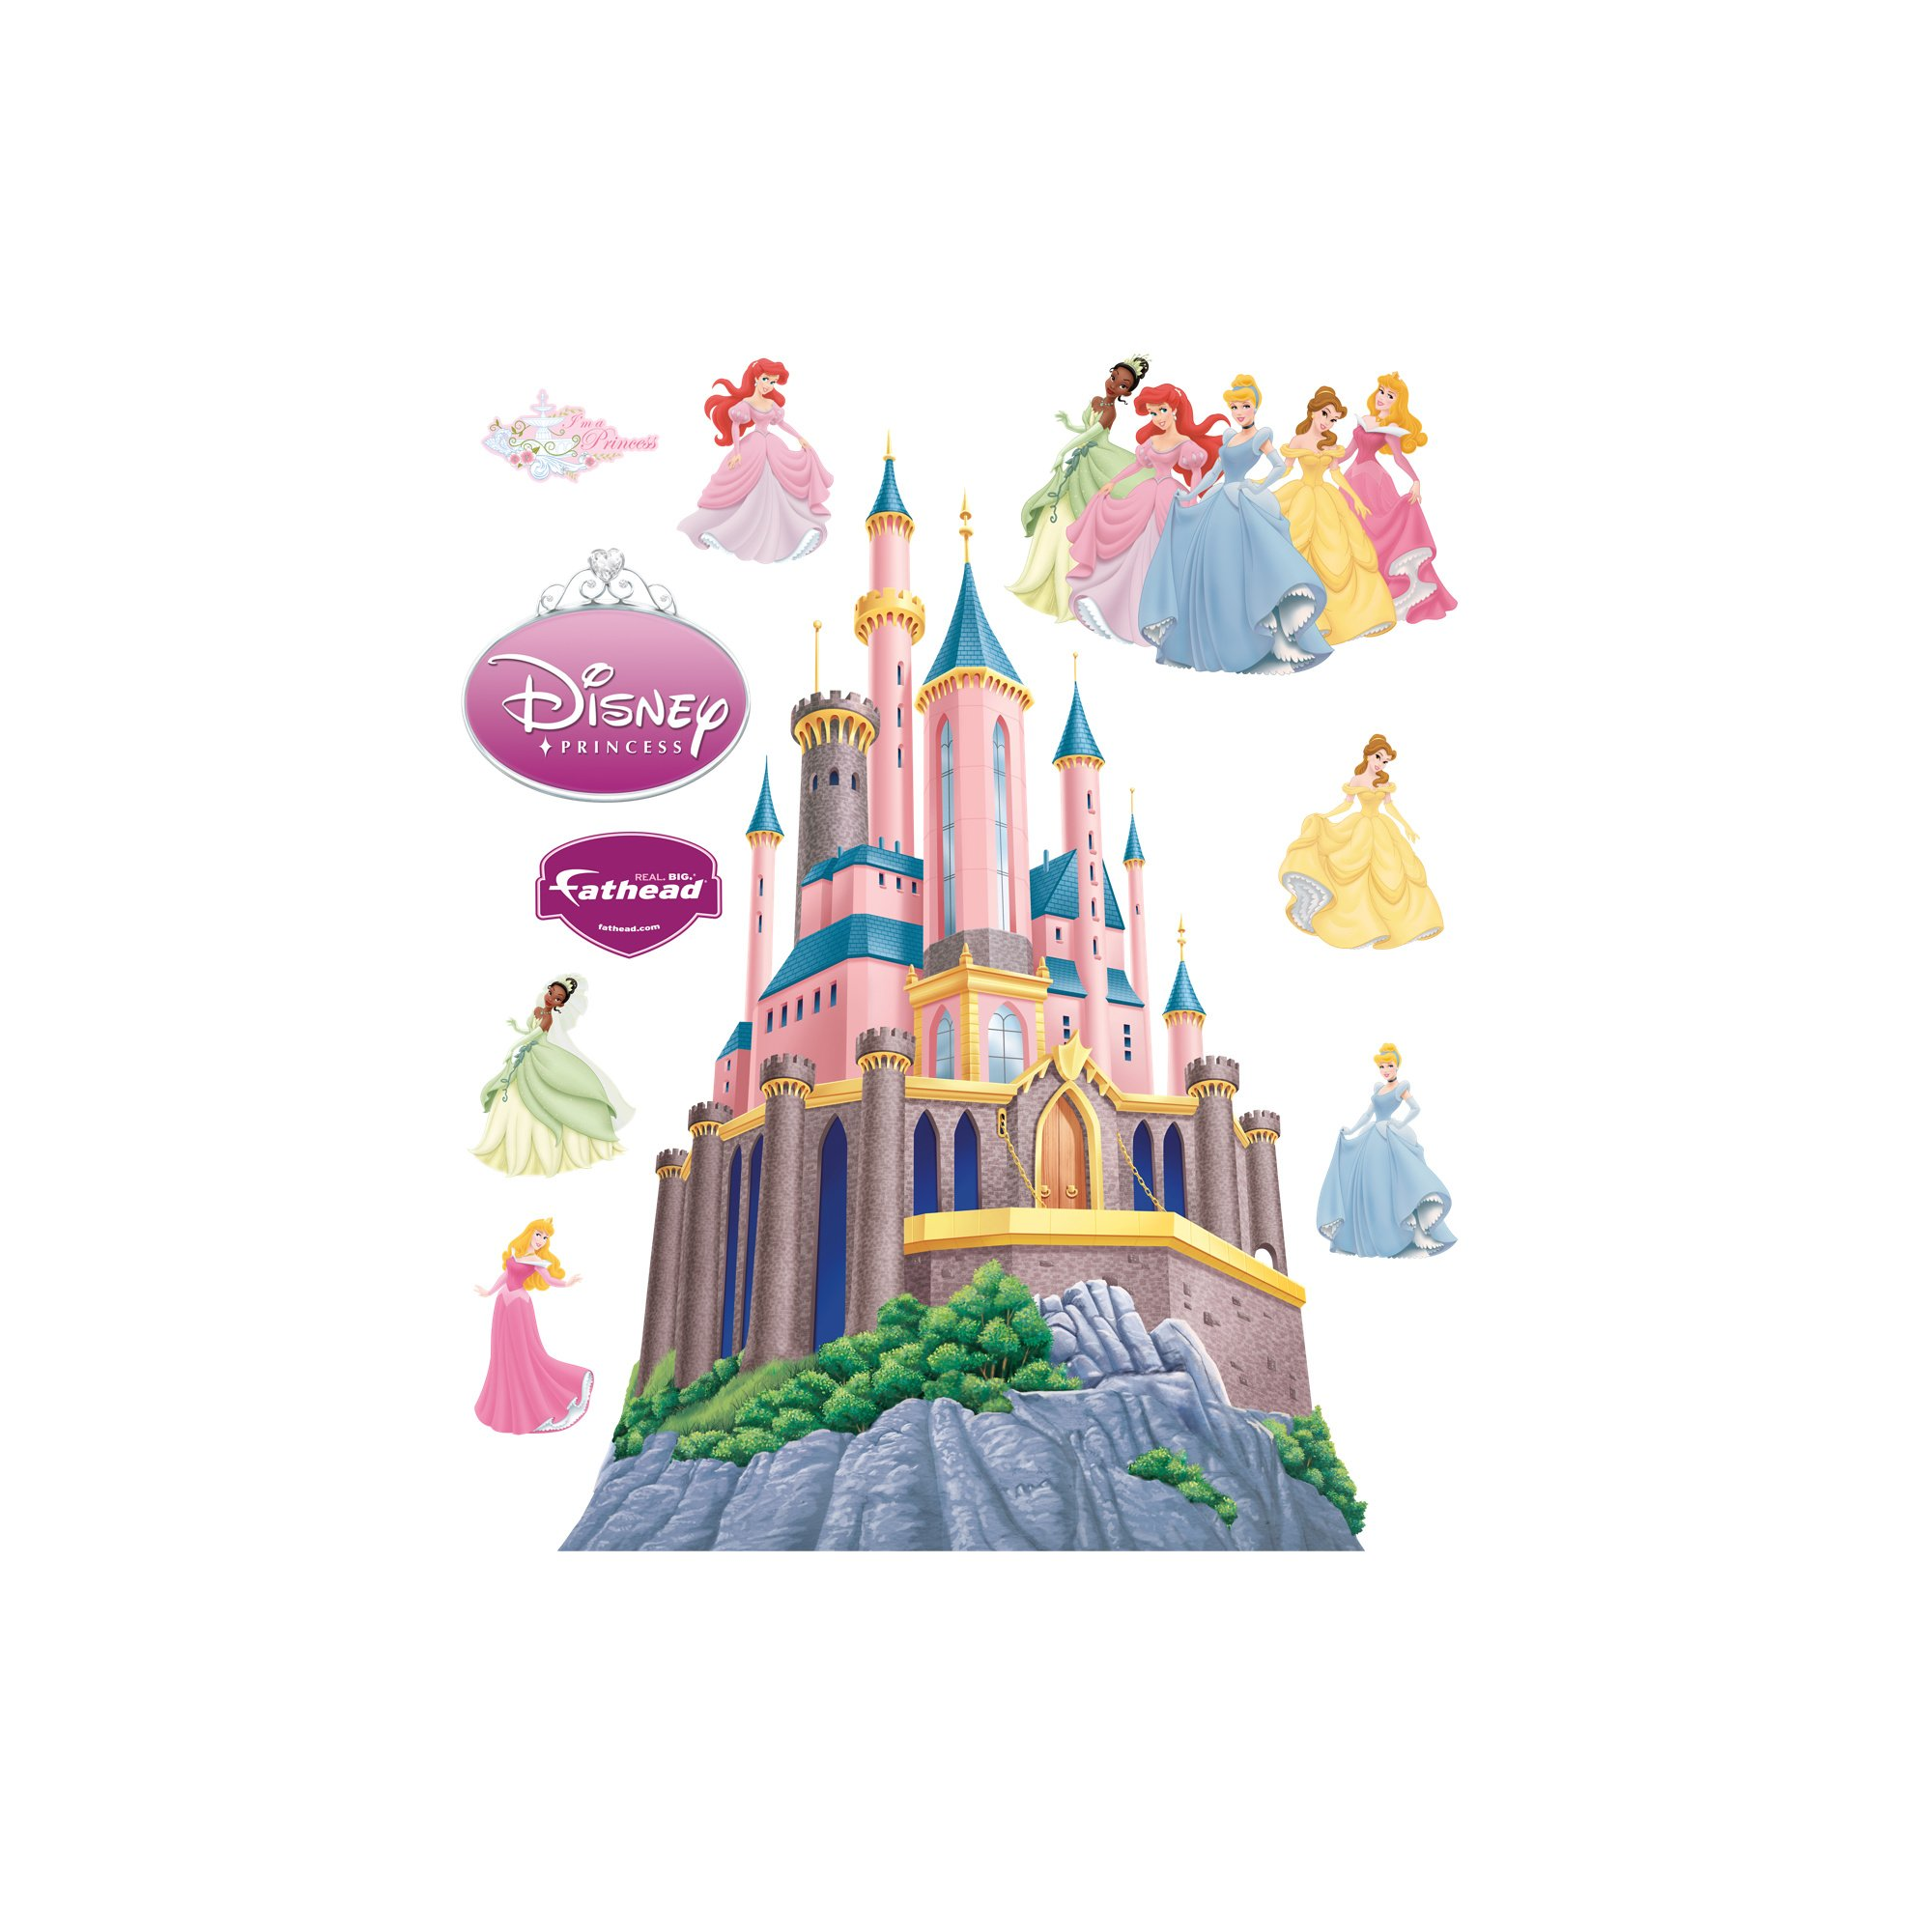 Disney Princess Castle Wall Graphic